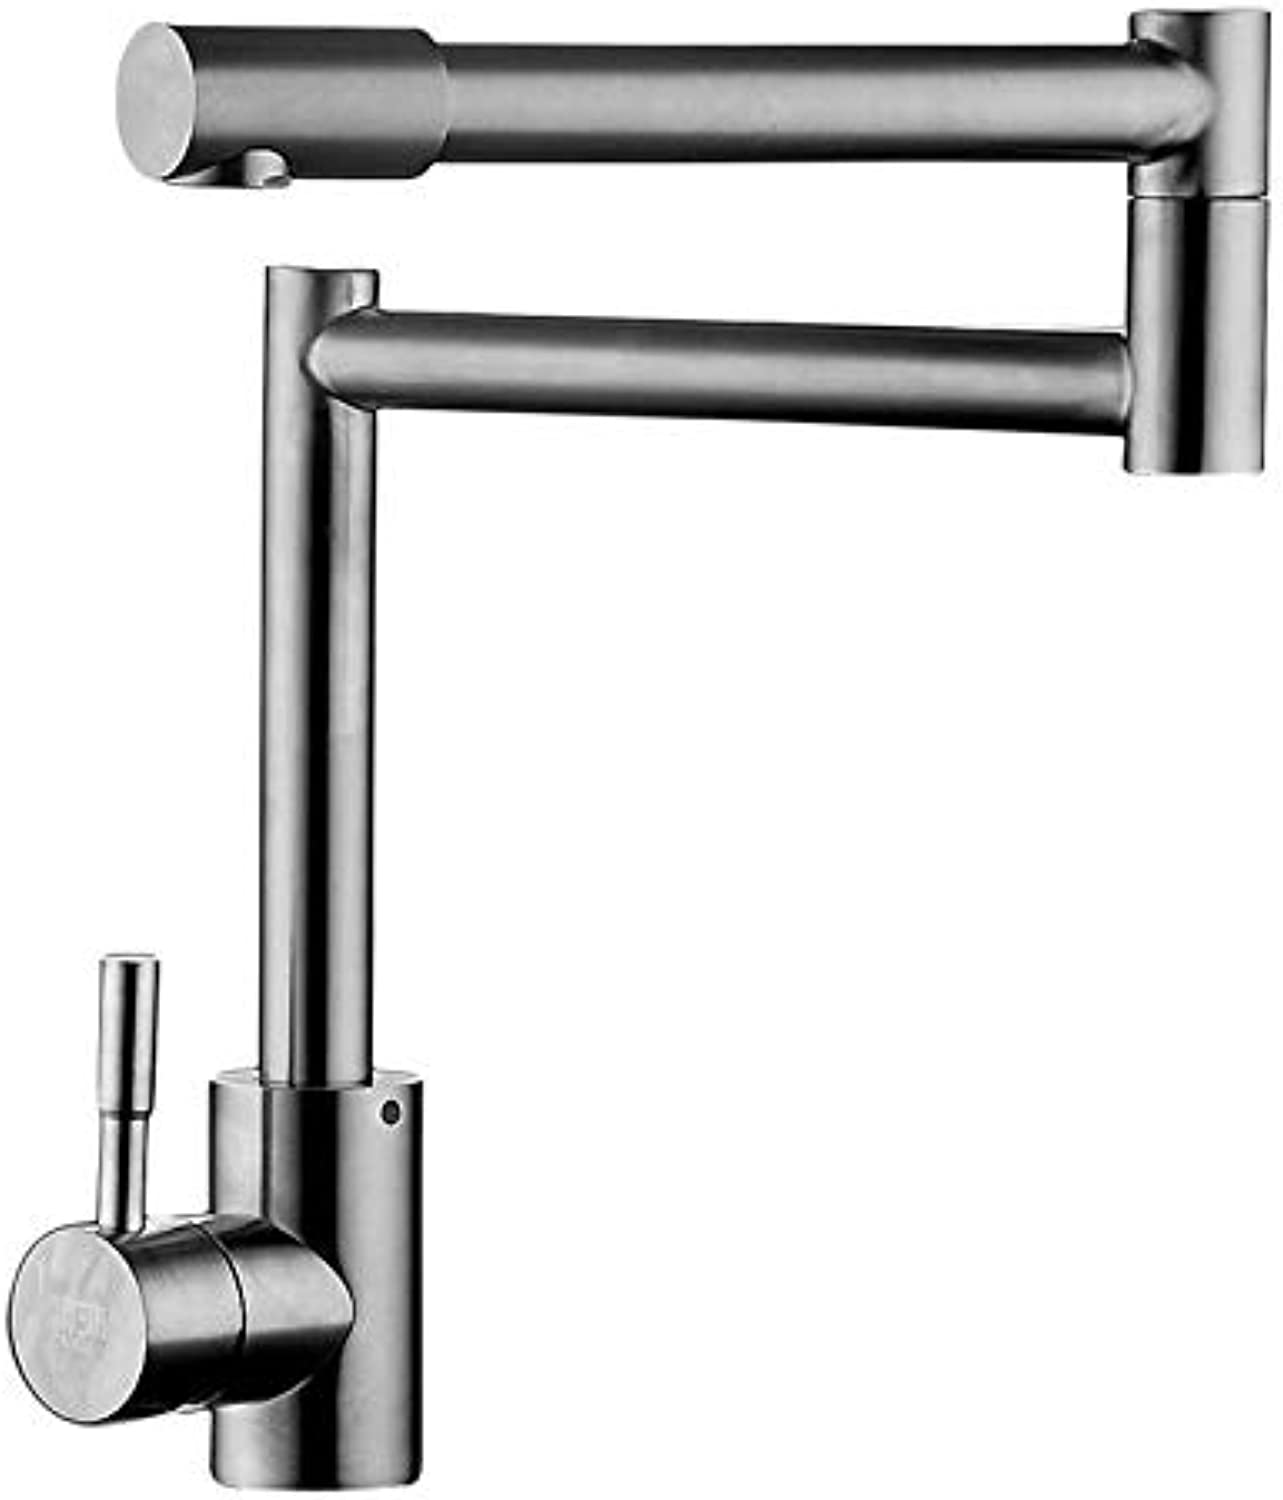 Antique Bathroom Washbasin Faucet Kitchen hot and Cold Sinks Lead-Free 304 Stainless Steel Brushed Faucet Universal redating Folding